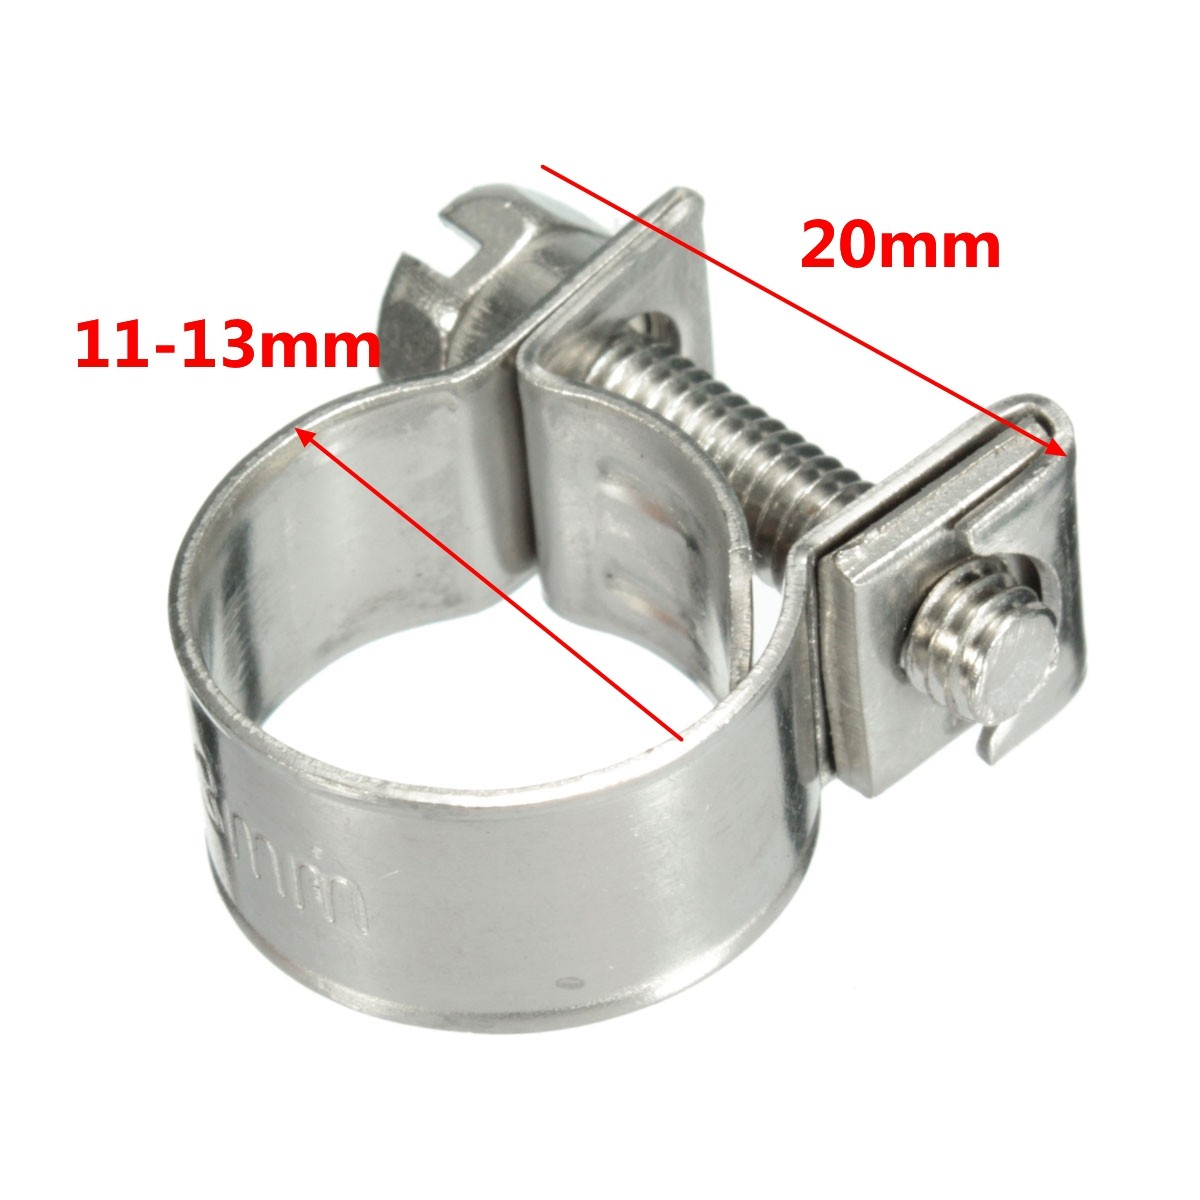 6mm-13mm Stainless Steel Mini Hose Clip Clamp for Fuel Line Pipe Petrol Pipe